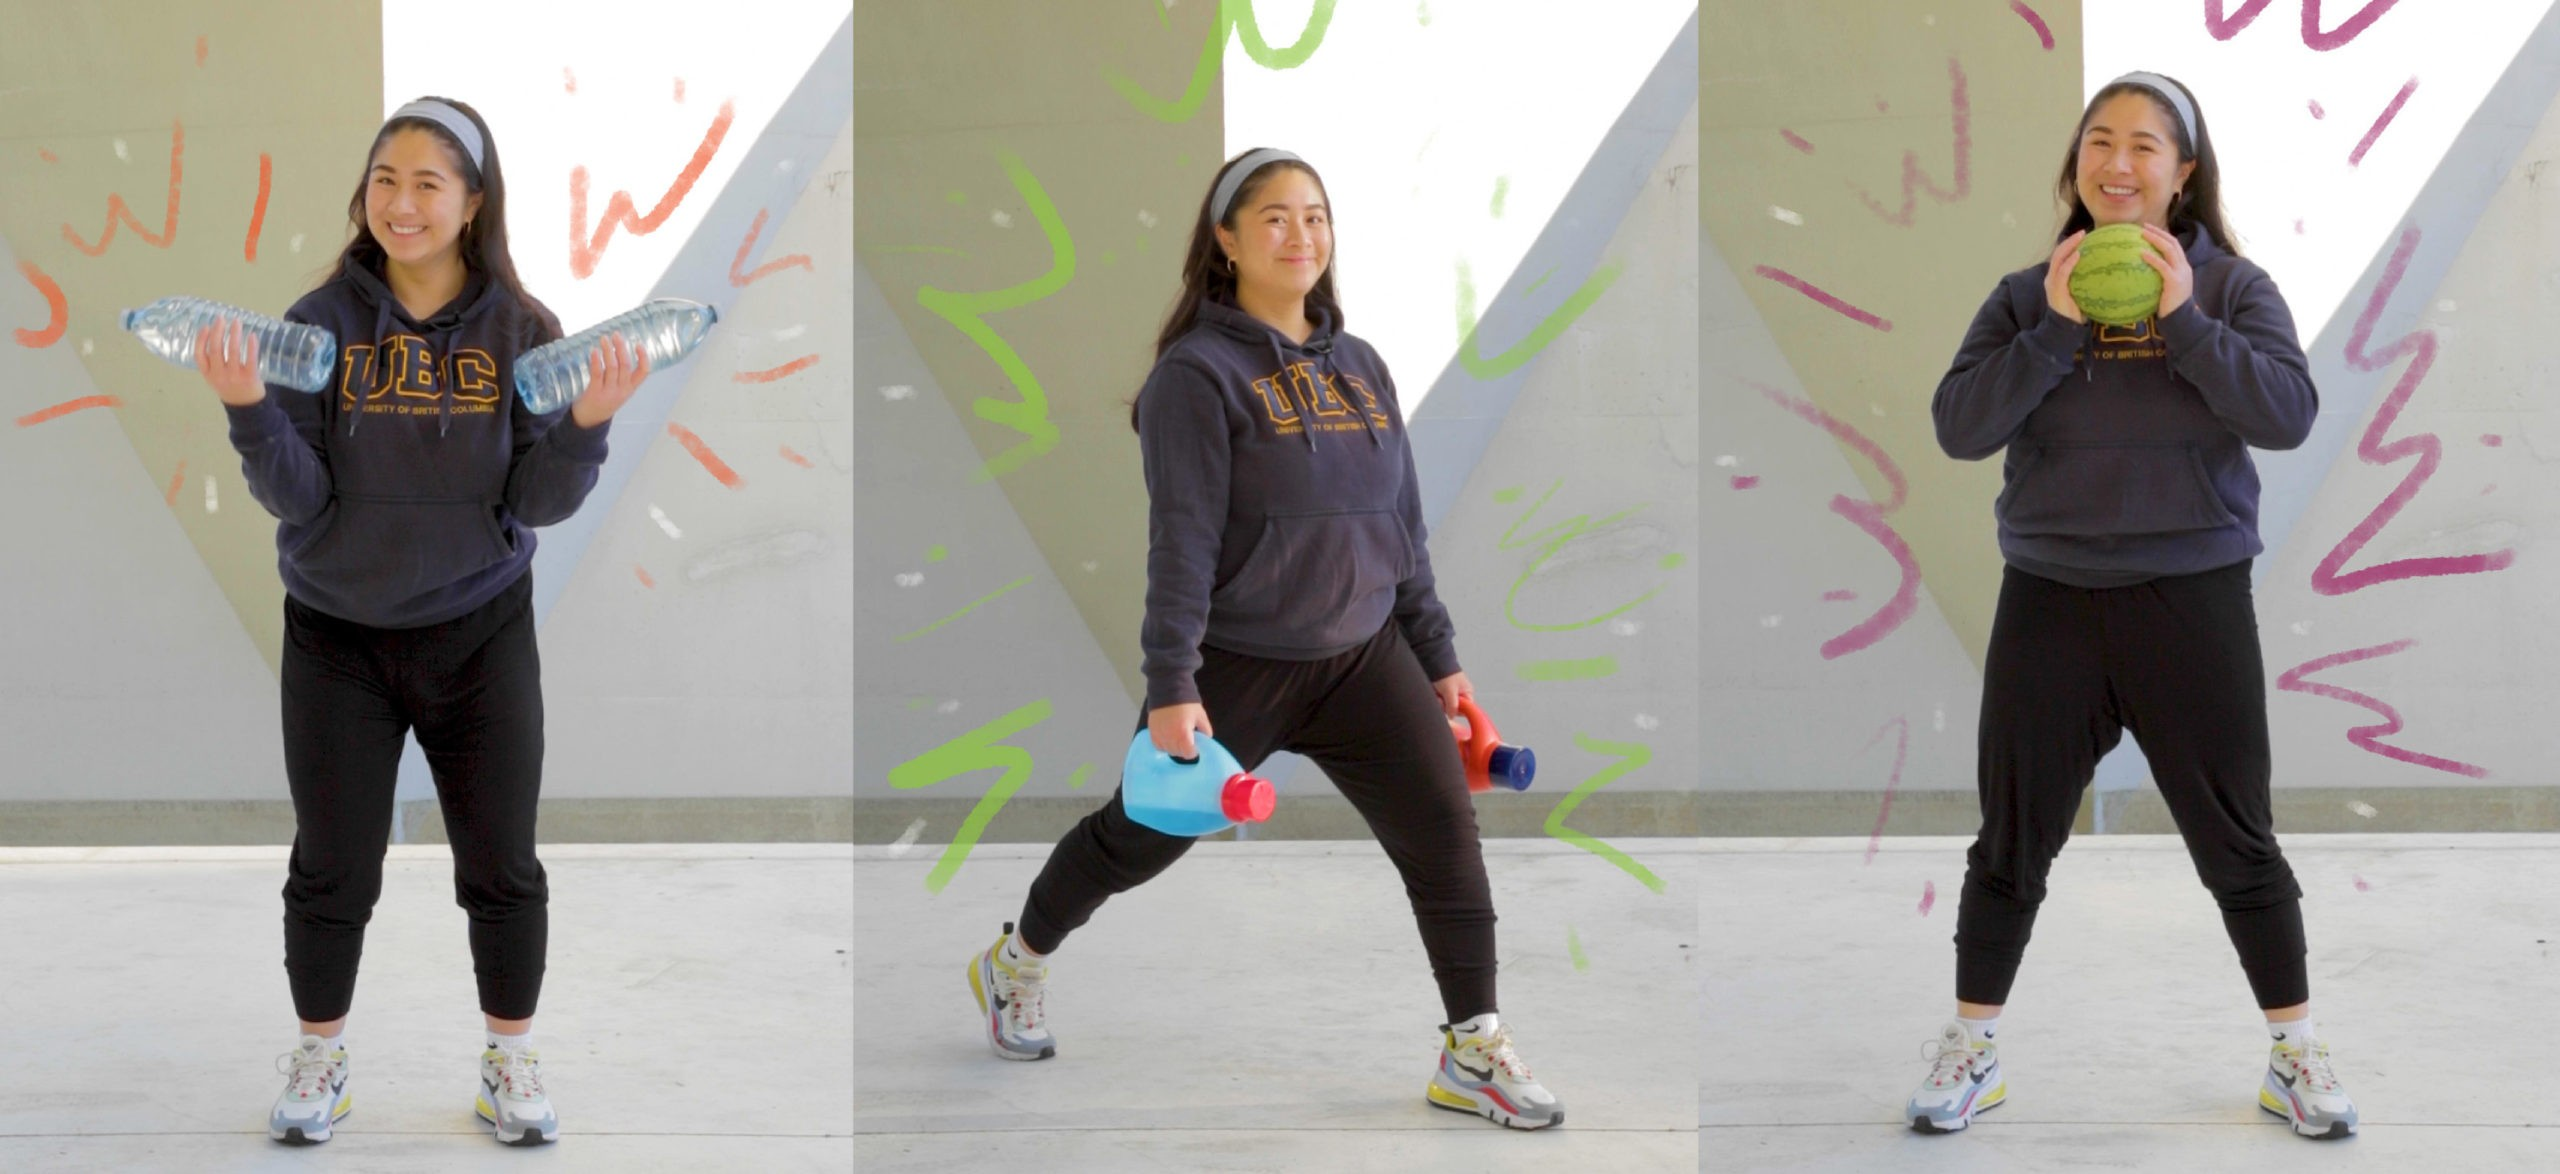 A person shows how to exercise using objects found at home, such as water bottles and laundry detergent bottles, as weights